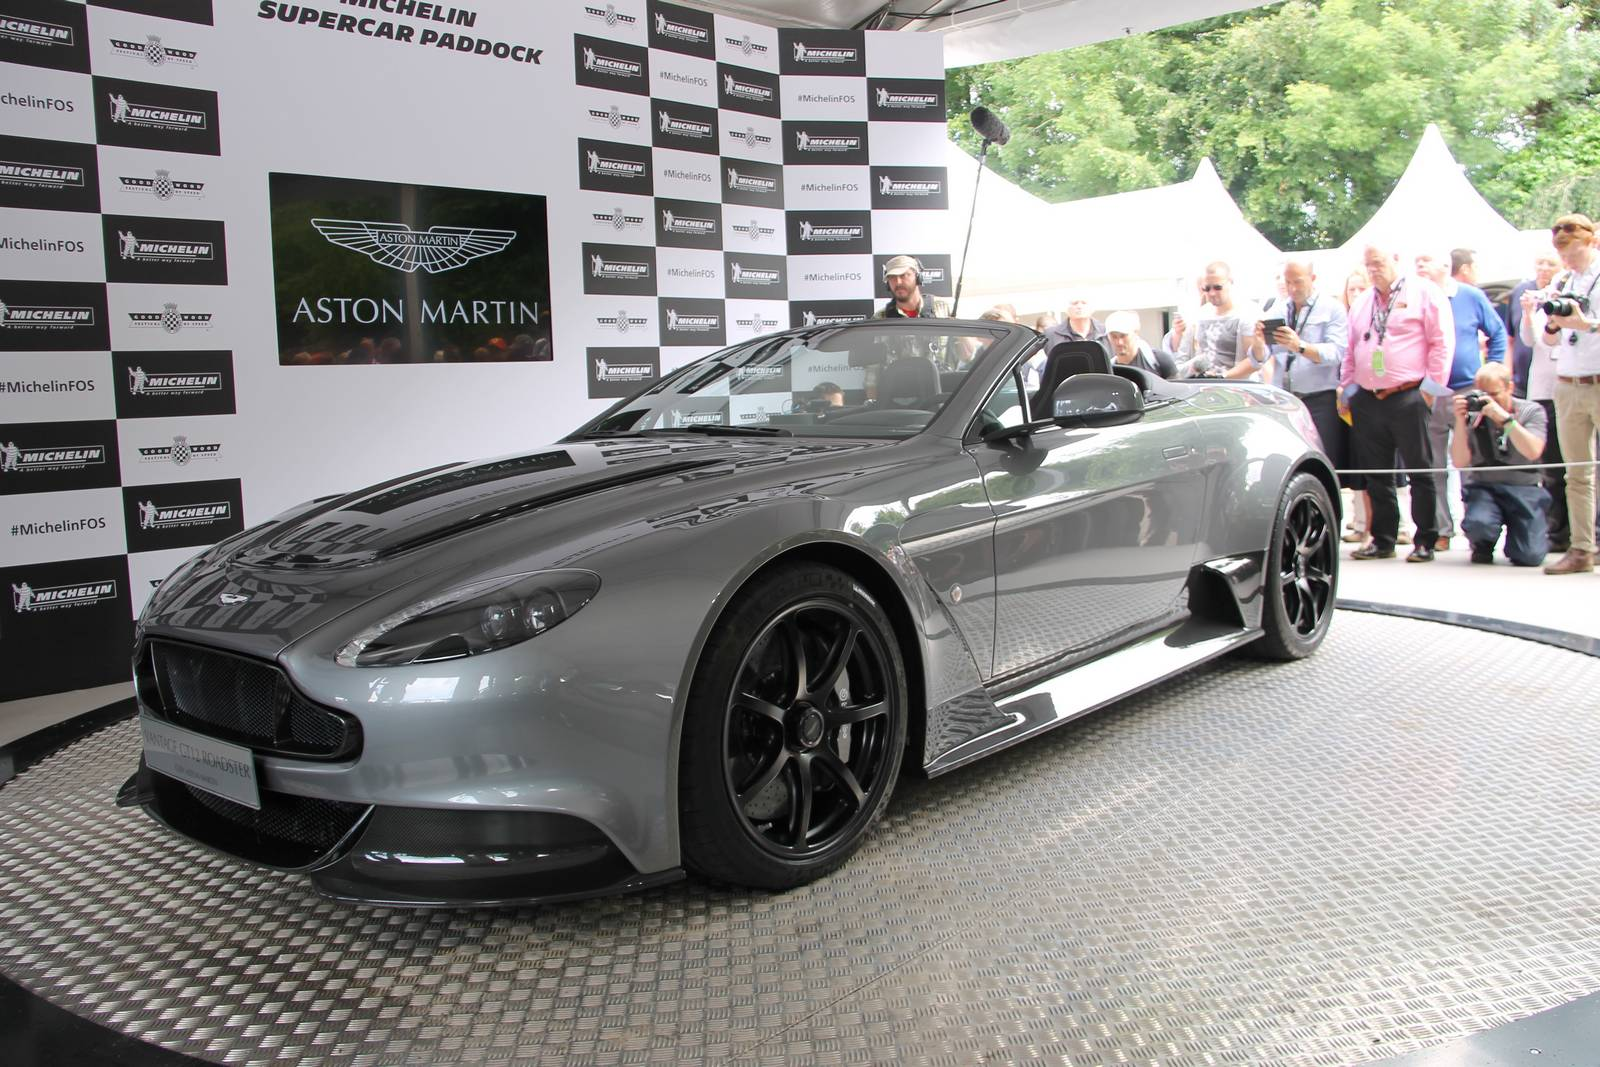 goodwood 2016 1 of 1 aston martin vantage gt12 roadster gtspirit. Black Bedroom Furniture Sets. Home Design Ideas